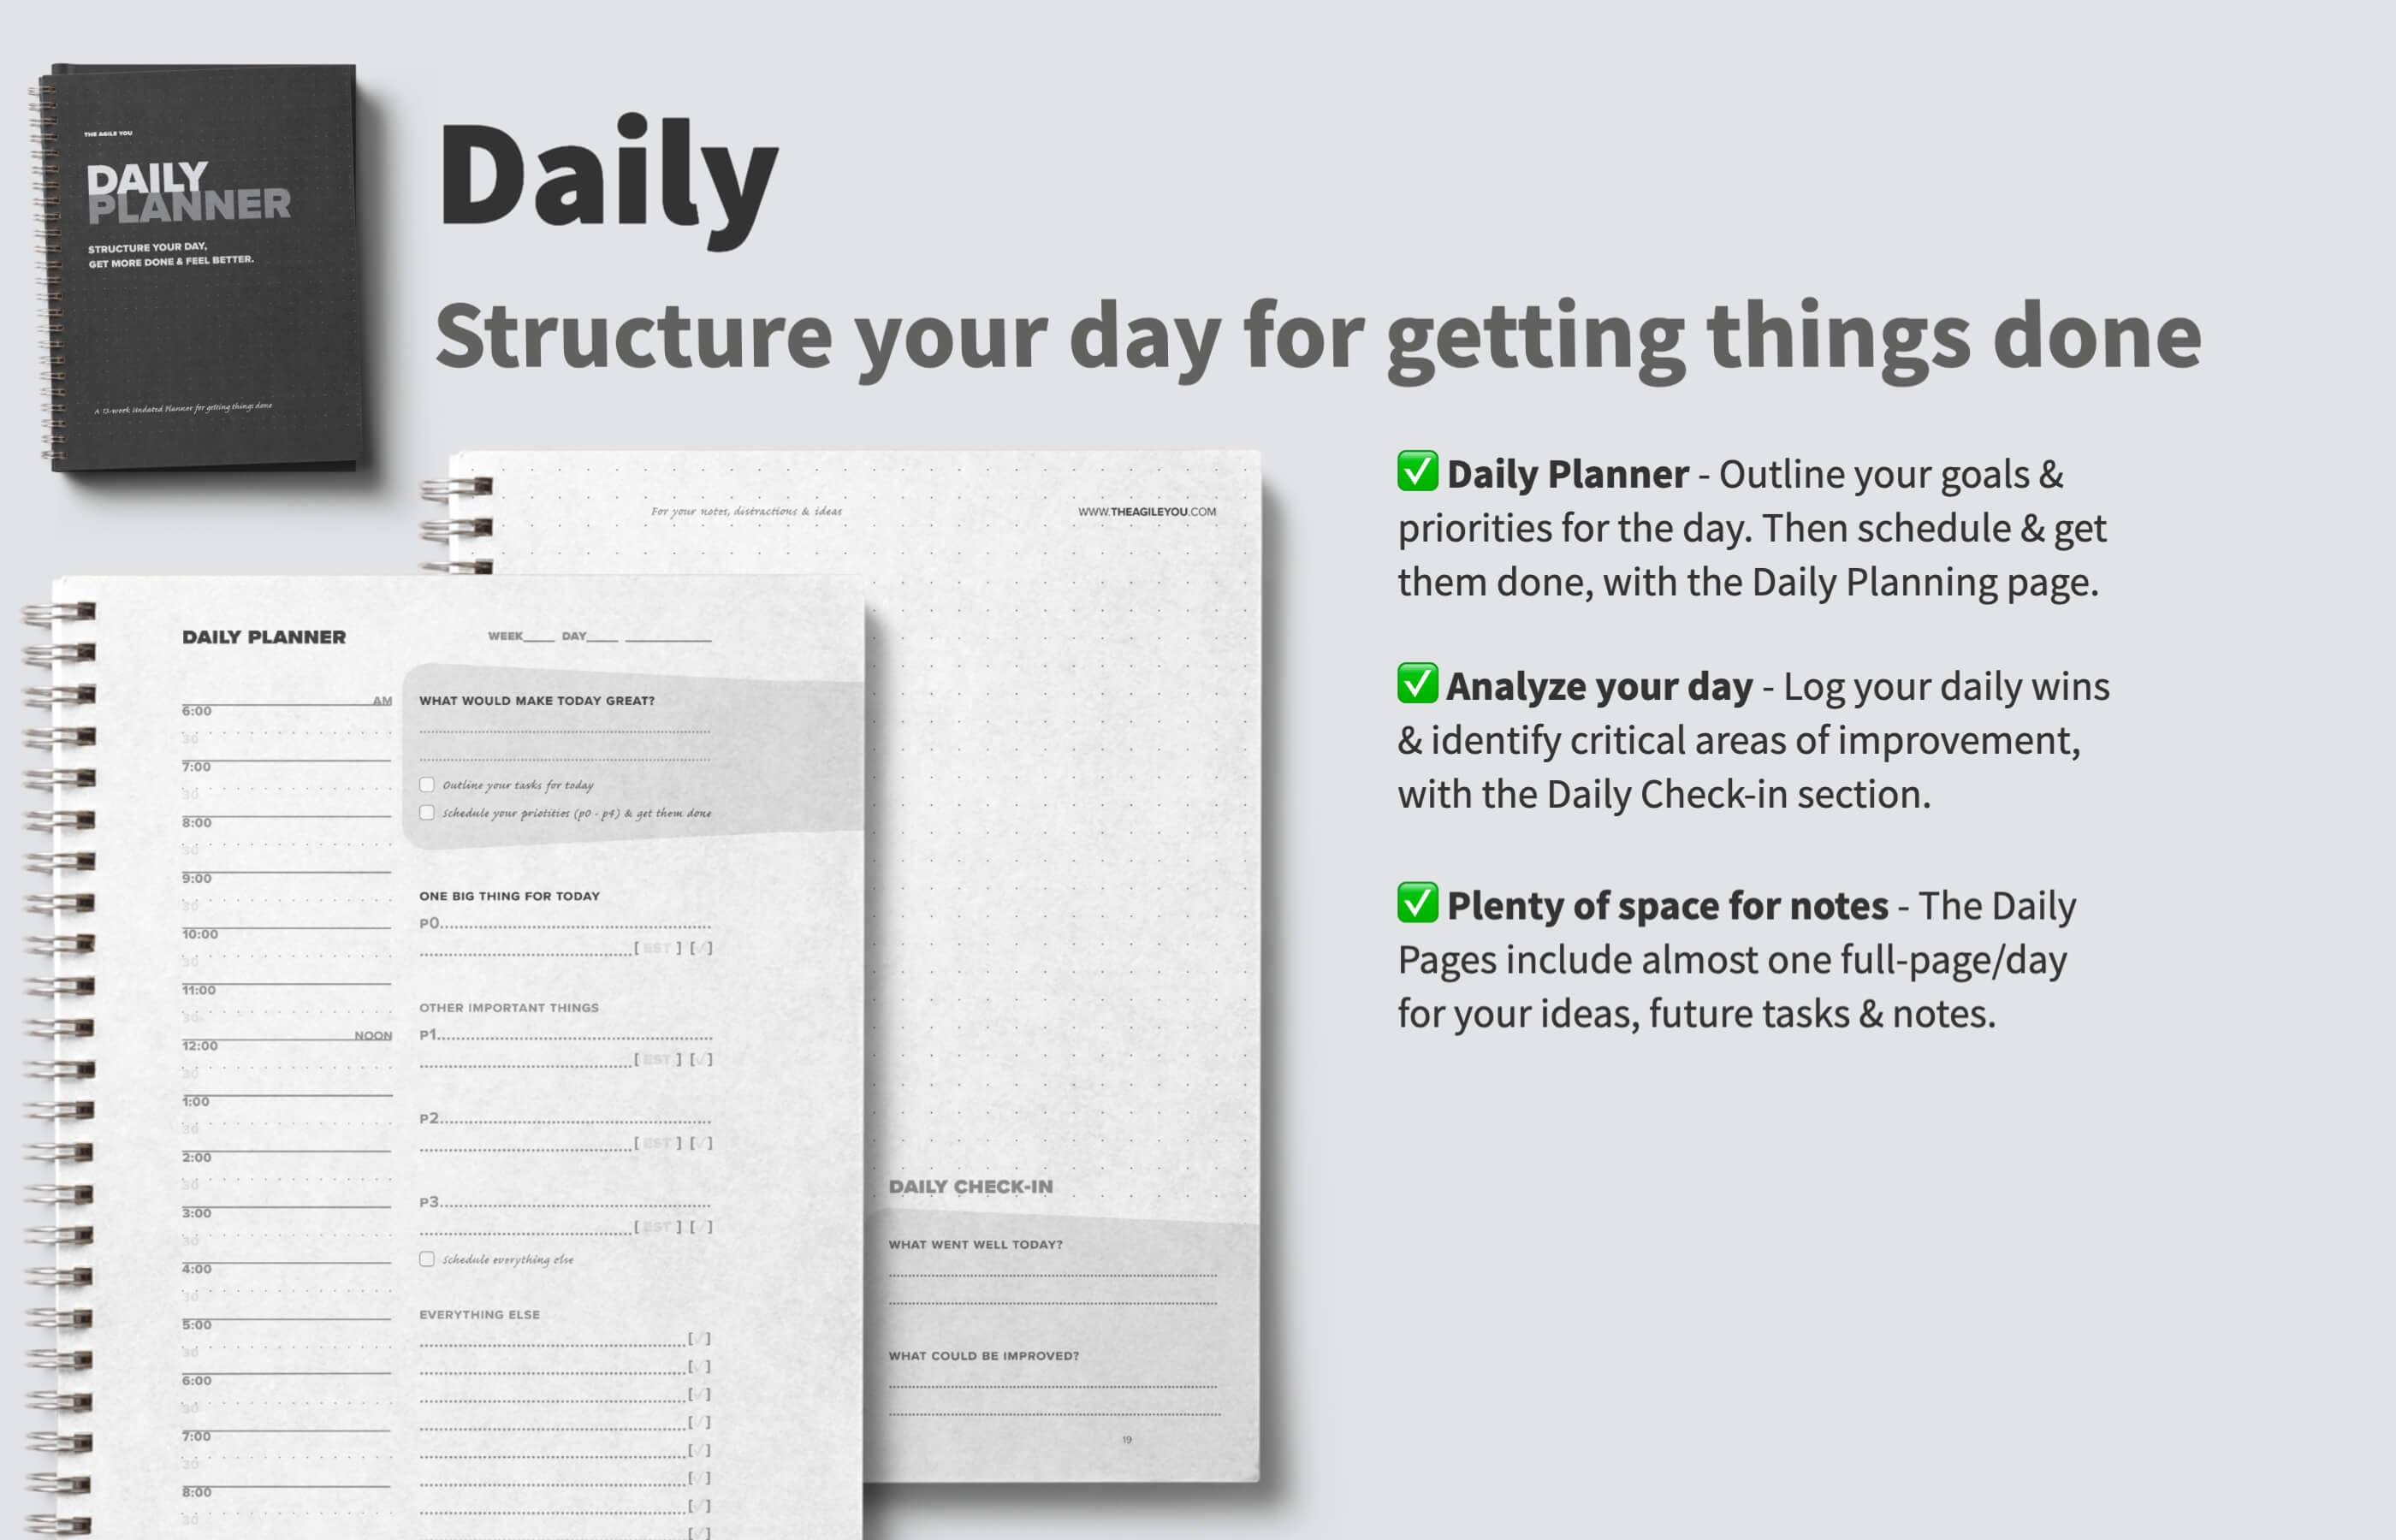 picture relating to Dailyplanner called The Agile Your self Every day Planner 2.0 - Set up your working day, receive